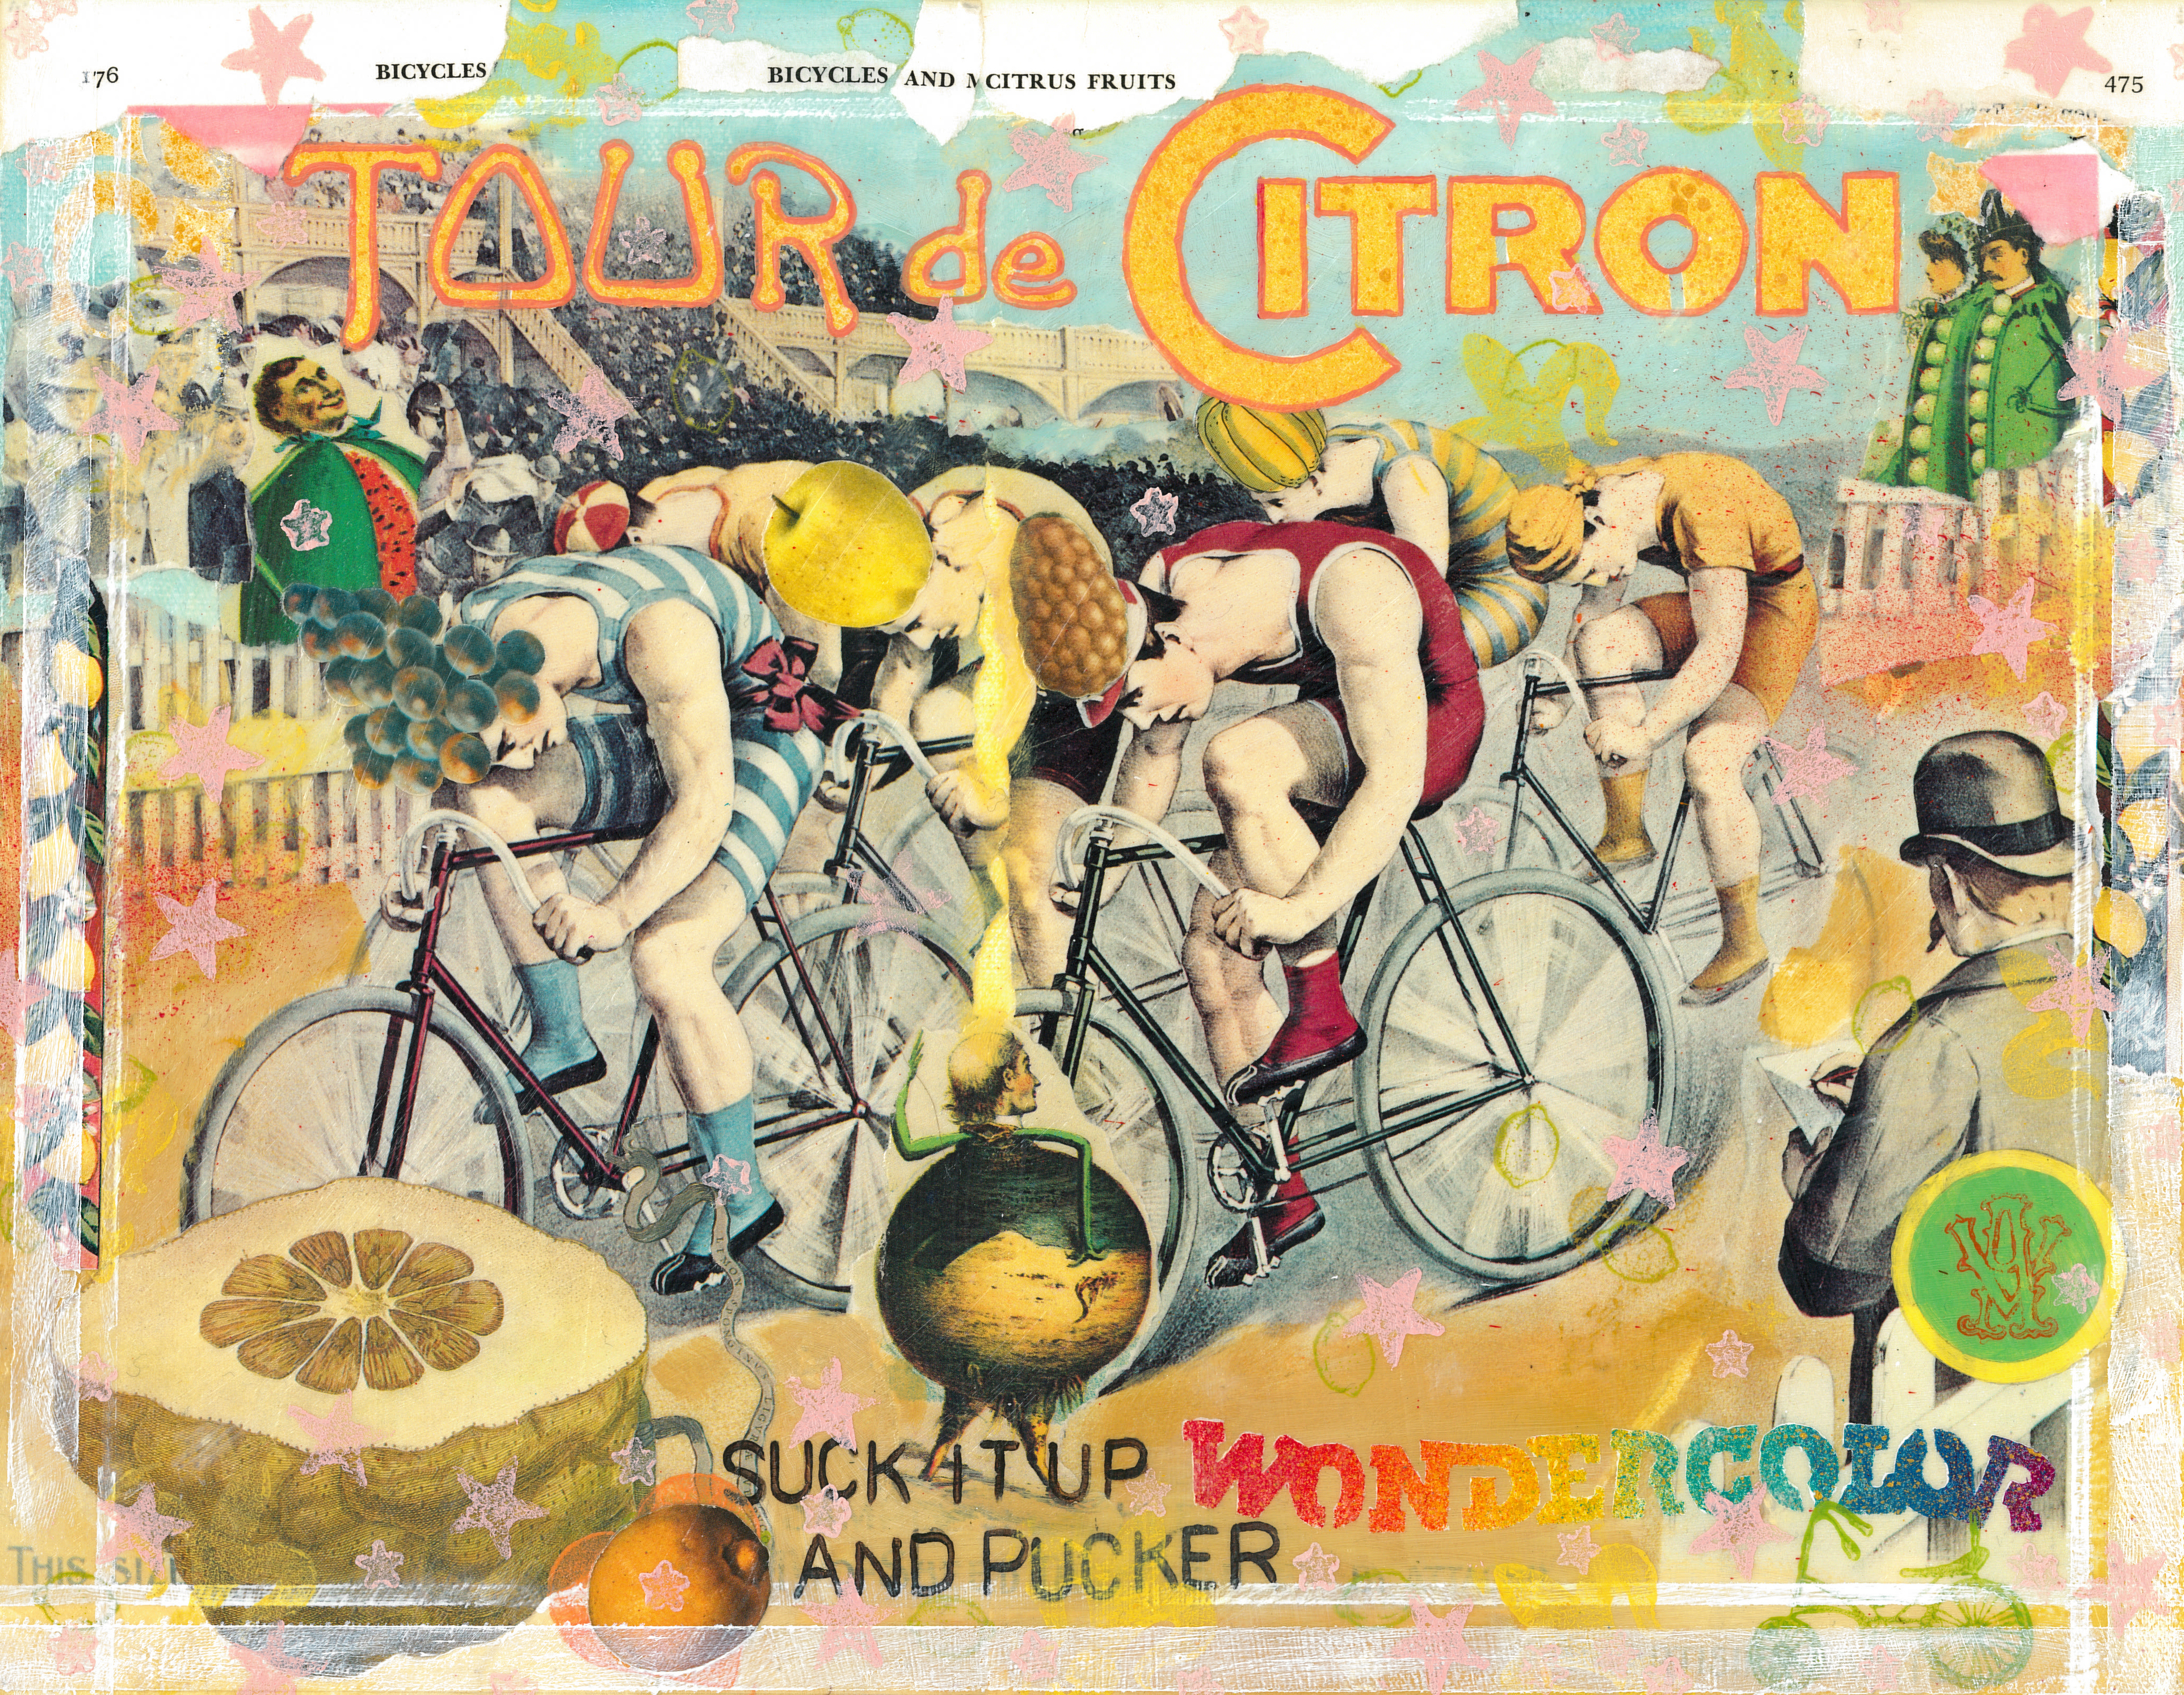 Tour de Citron